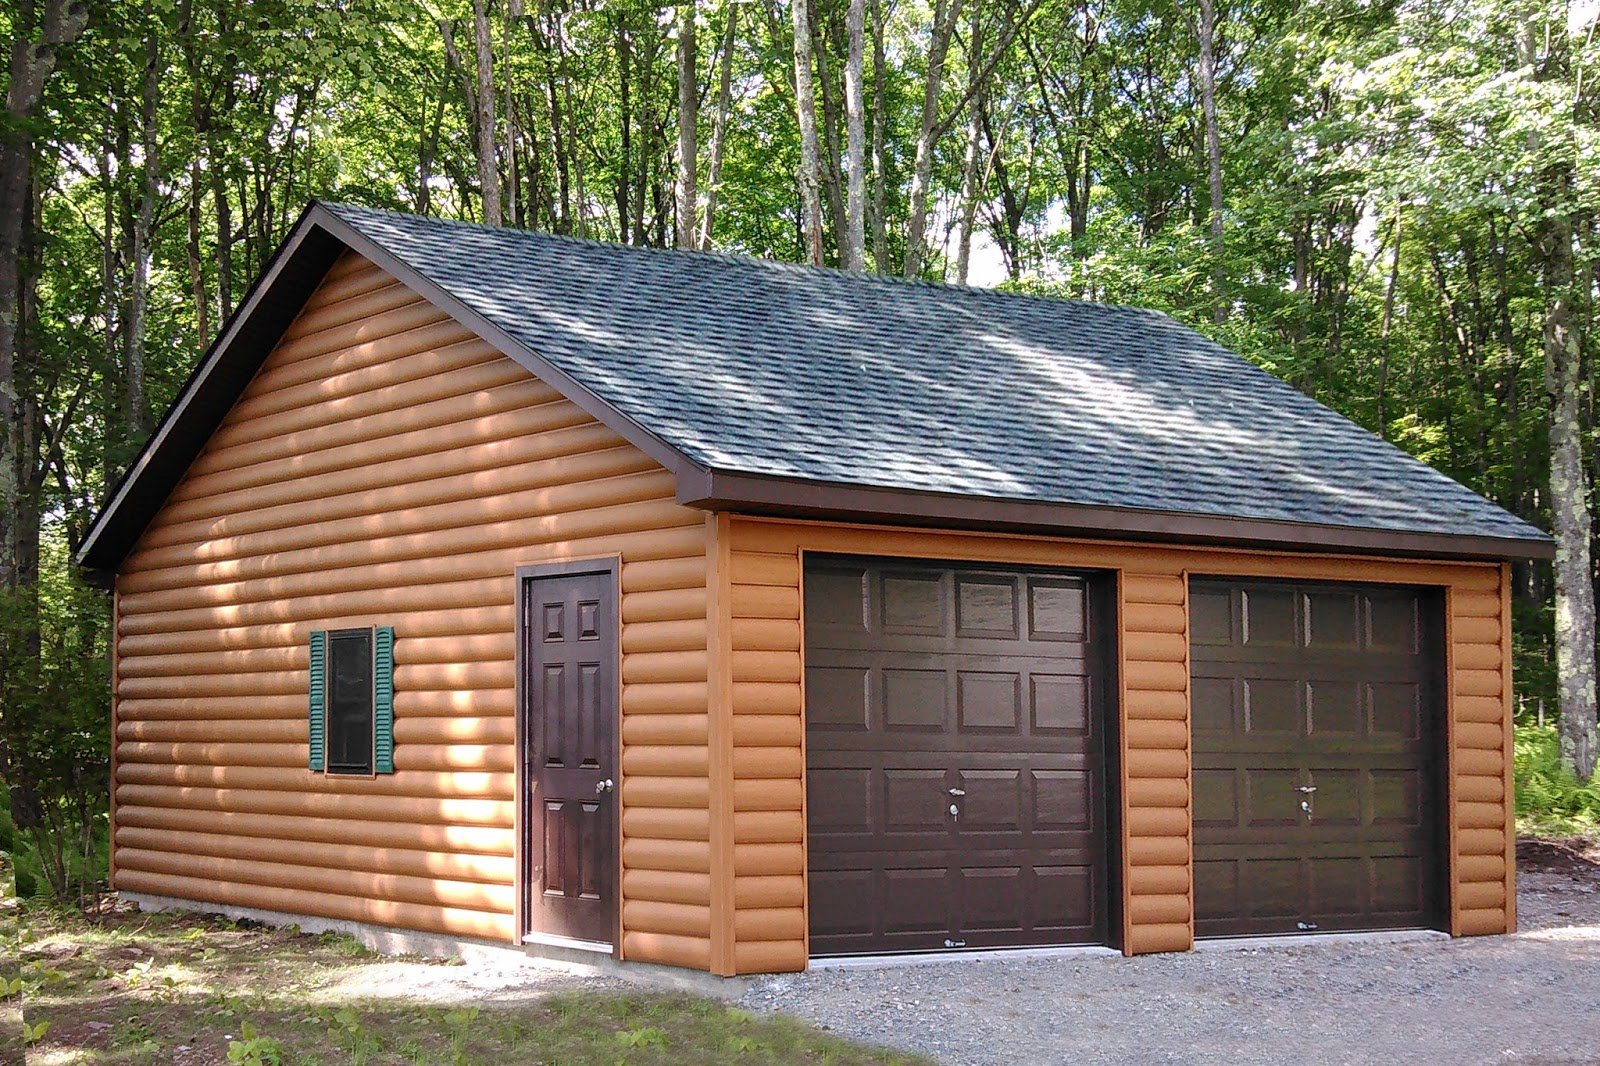 Prefab car garages for sale in pa nj ny ct de md va for Prefab 3 car garage with apartment